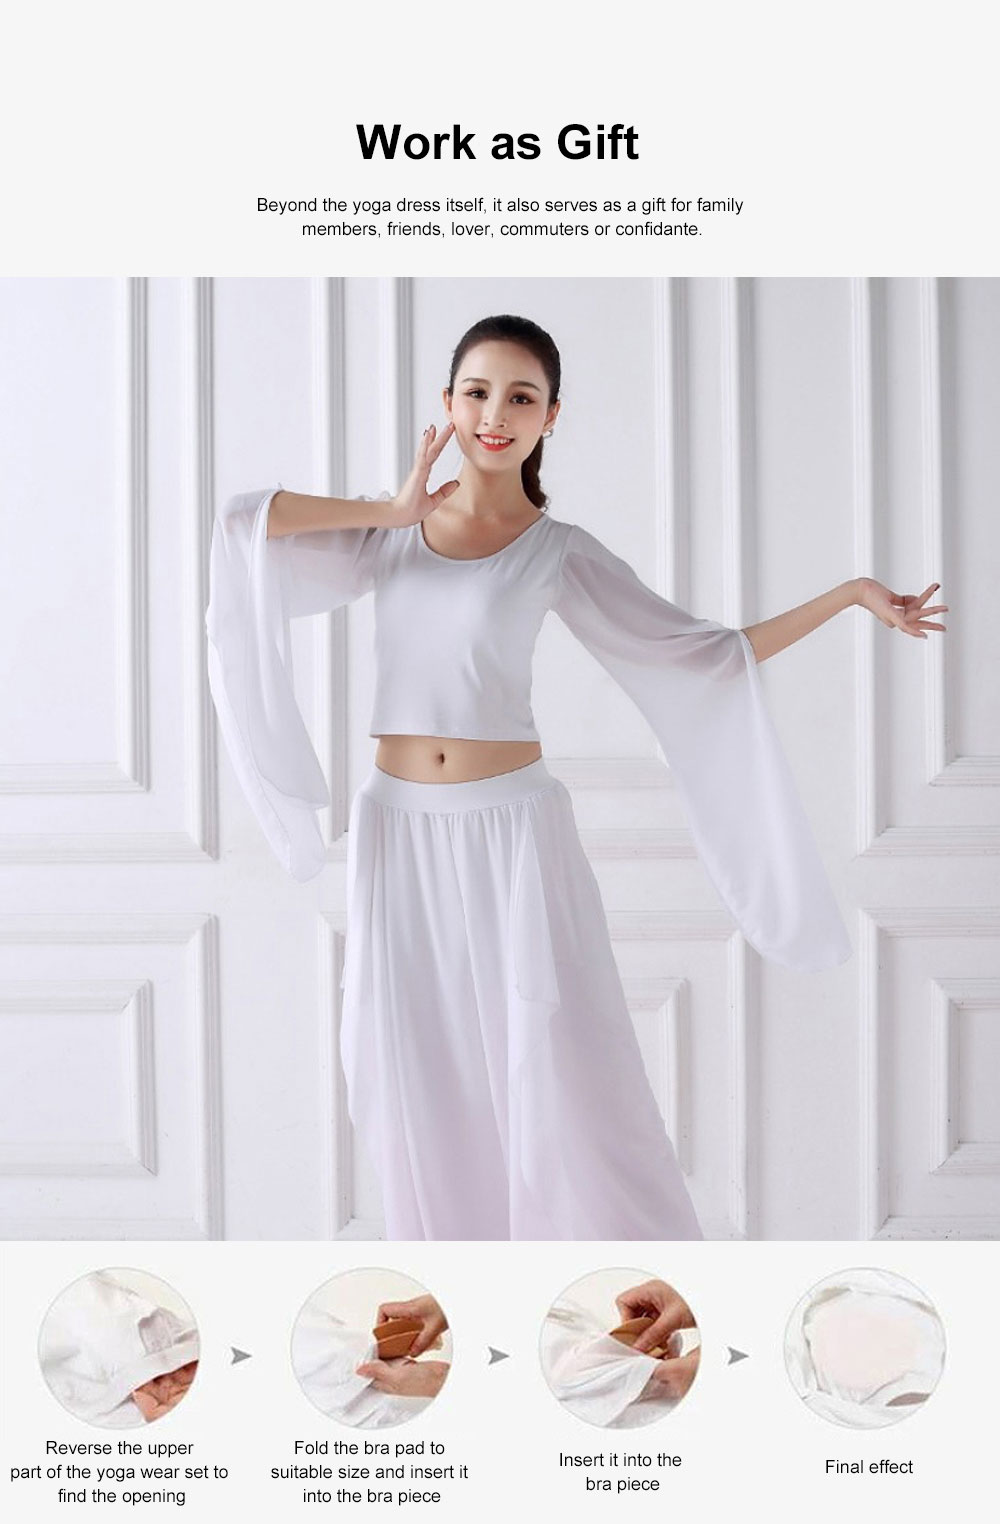 Beauty Shaped Yoga Wear for Women, Cotton Chiffon Yarn Belly Dance Formal Clothes Suit, Slim-fitting Performance Clothes Suit for Yoga, Fitness, Exercise 2